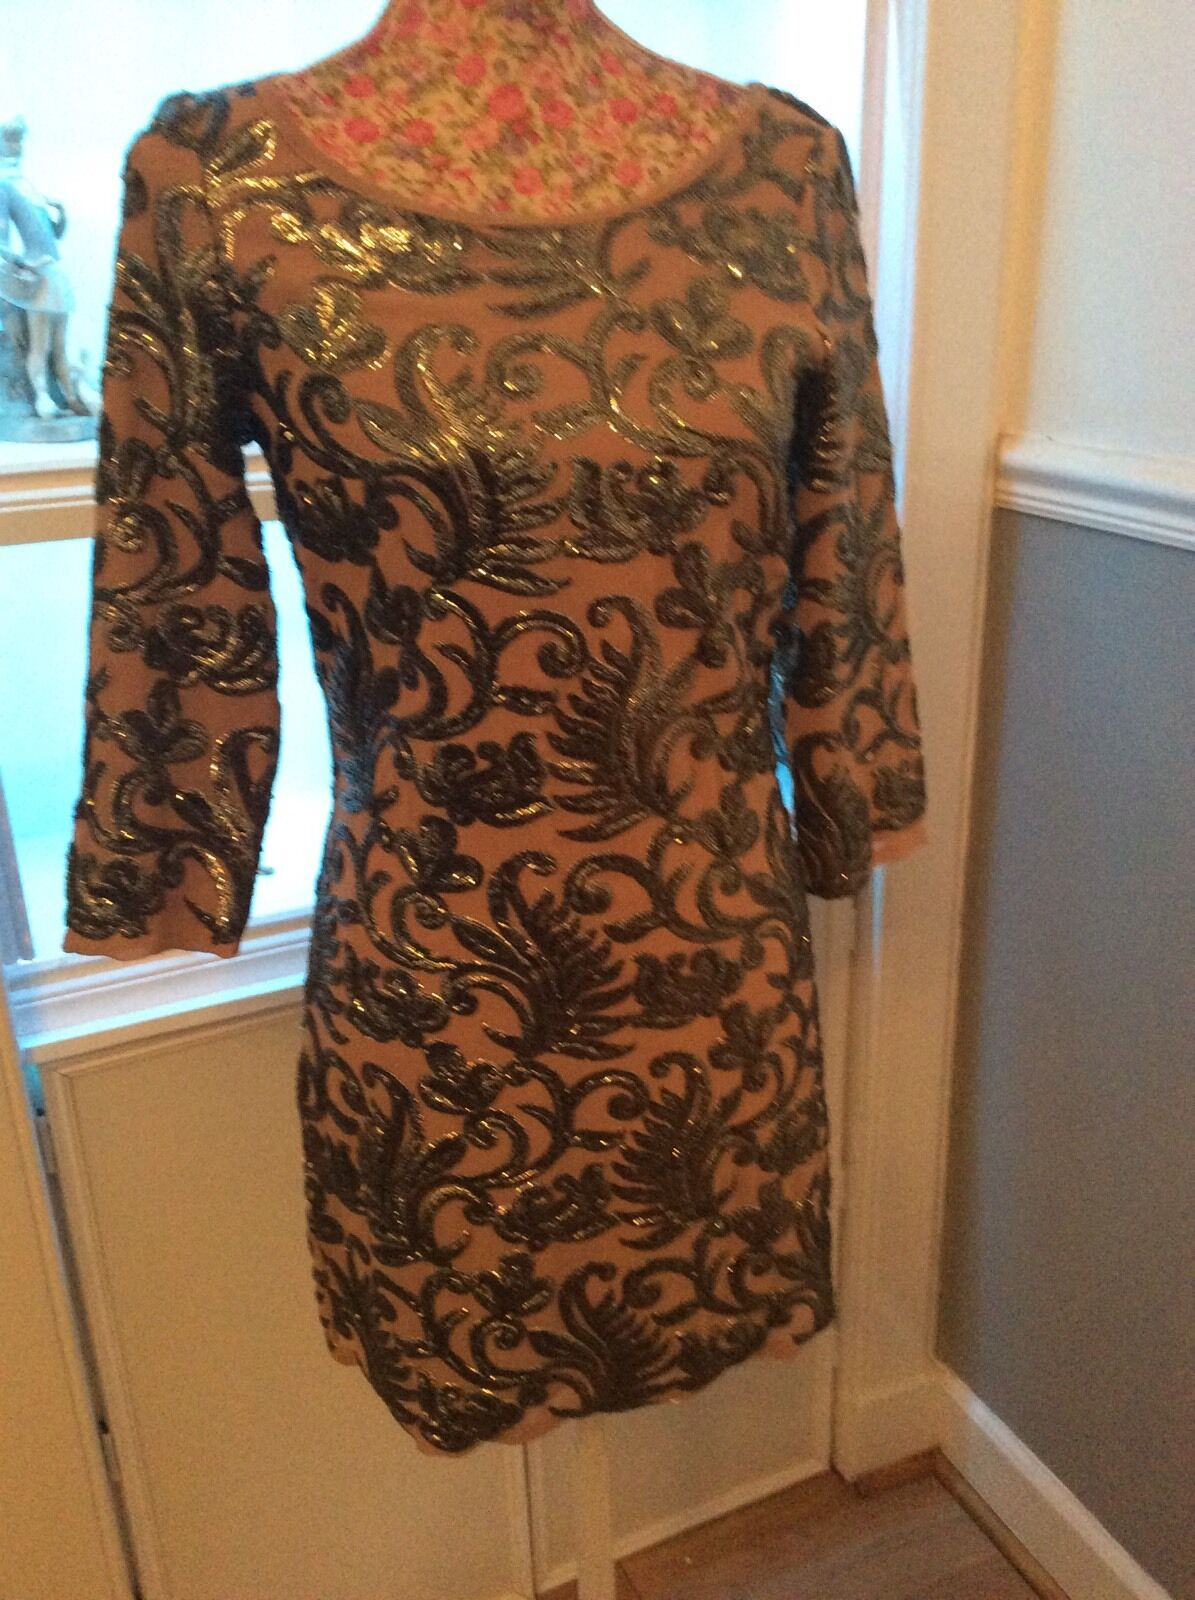 38344b7fc92 ... Monsoon Monsoon Monsoon Ally Mink Nude Dress Size 8 Bnwt Very Rare  Posting Daily Holiday 7a4a21 ...